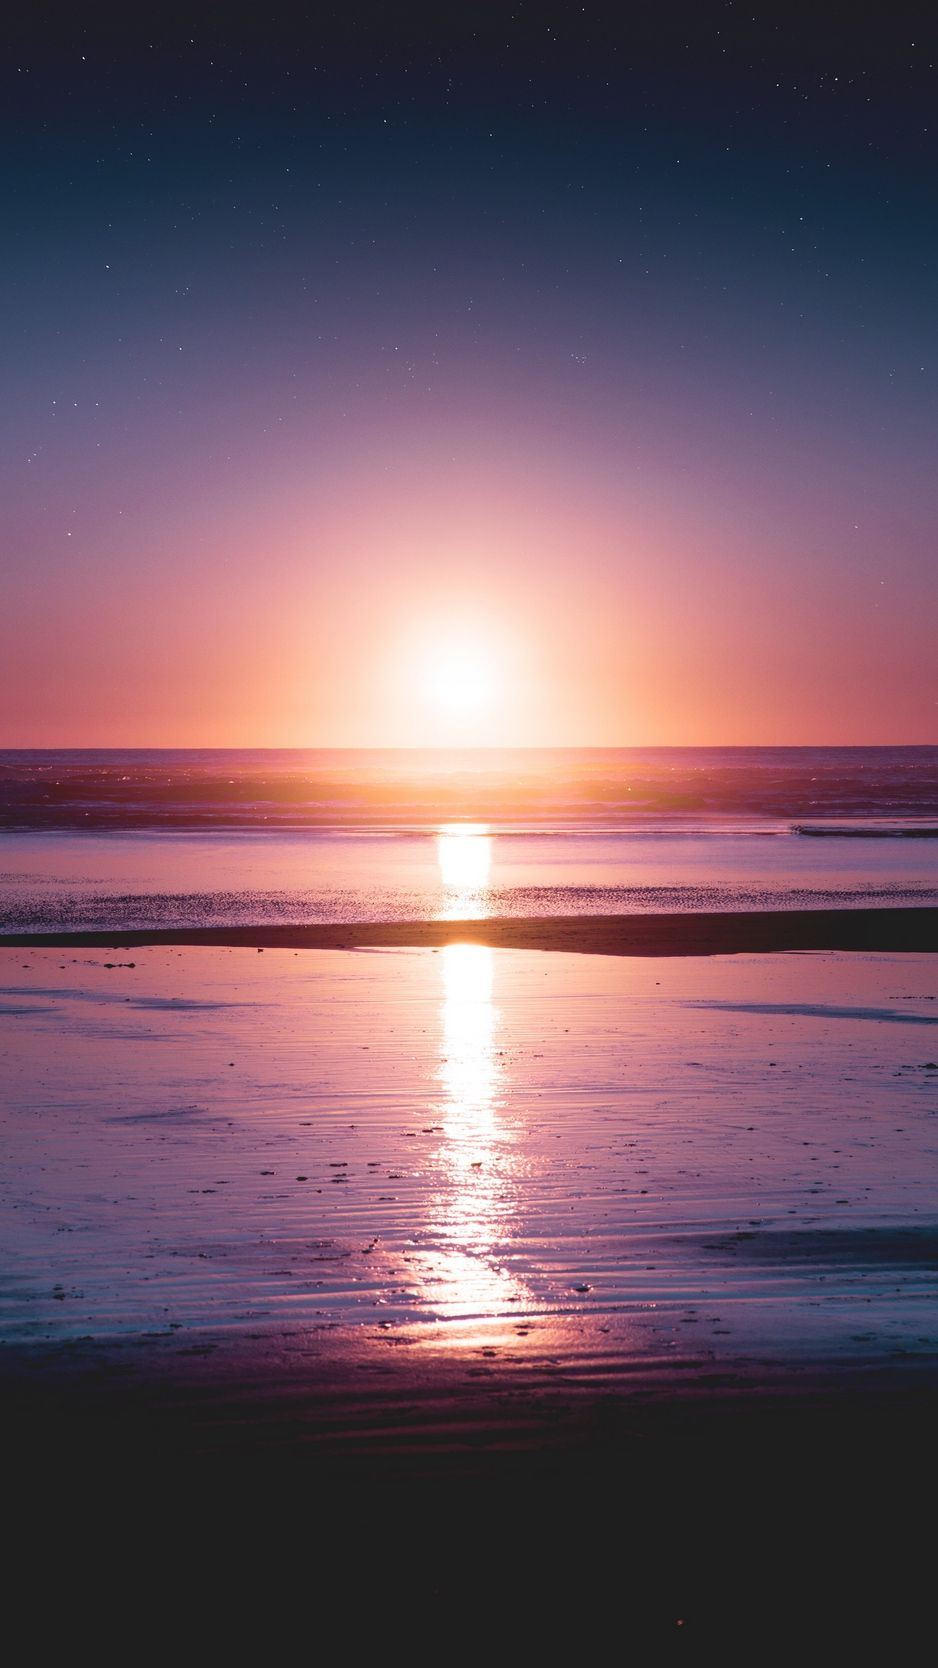 The Most Beautiful Sunsets In The World Backgrounds Cool Part 3 Beautiful Sunset Sunset Cool Backgrounds